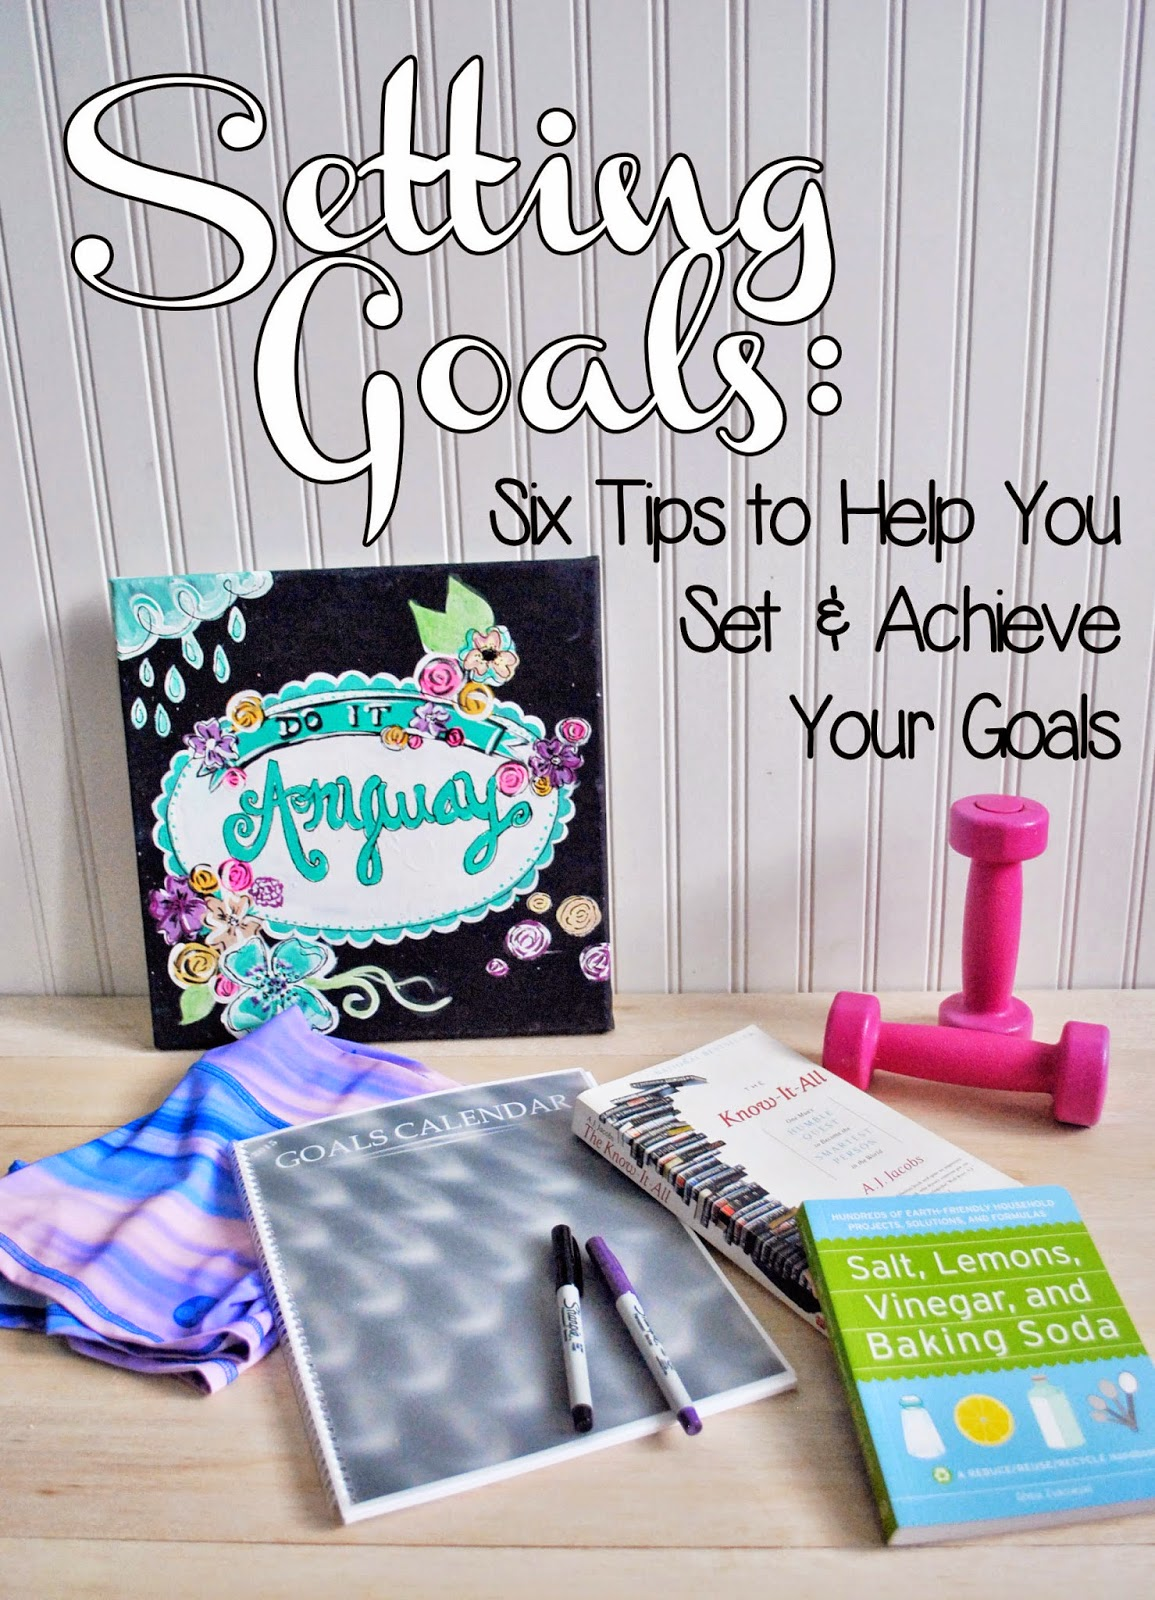 Setting Goals - Six Tips to Help You Set and Achieve Your Goals